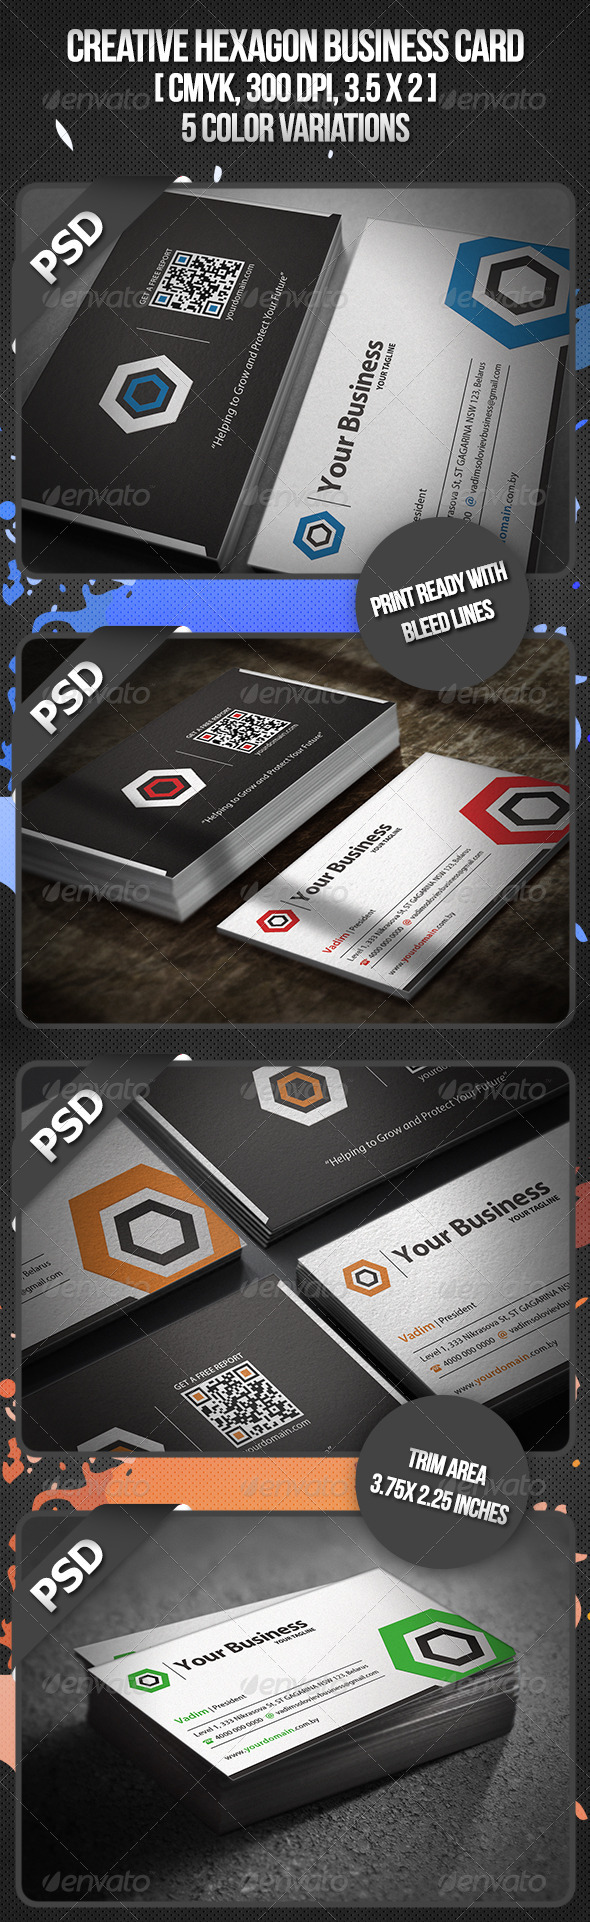 Creative Hexagon Business Card - Corporate Business Cards